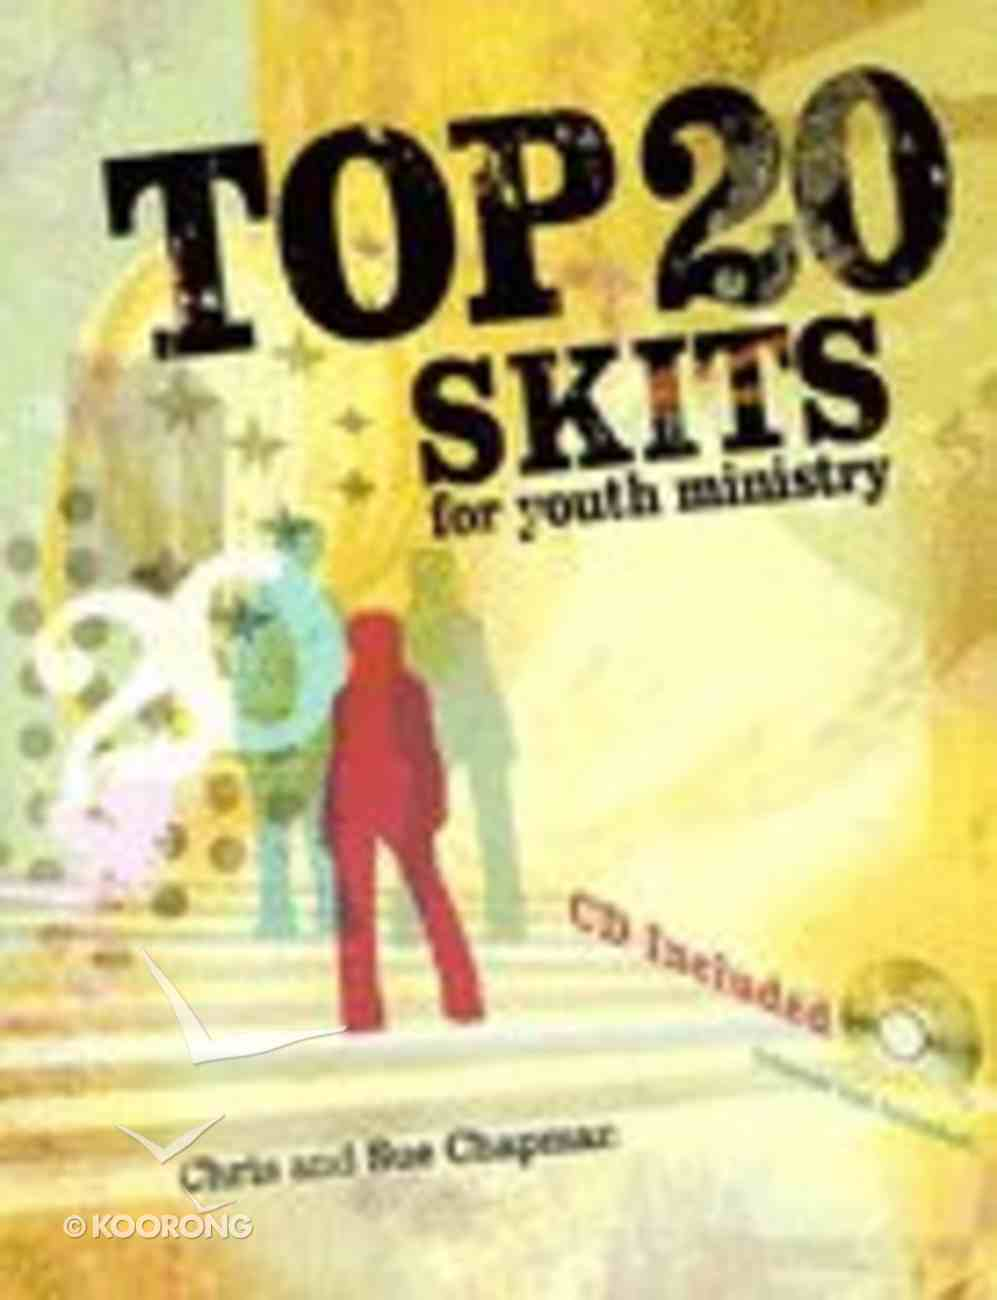 Top 20 Skits For Youth Ministry Paperback